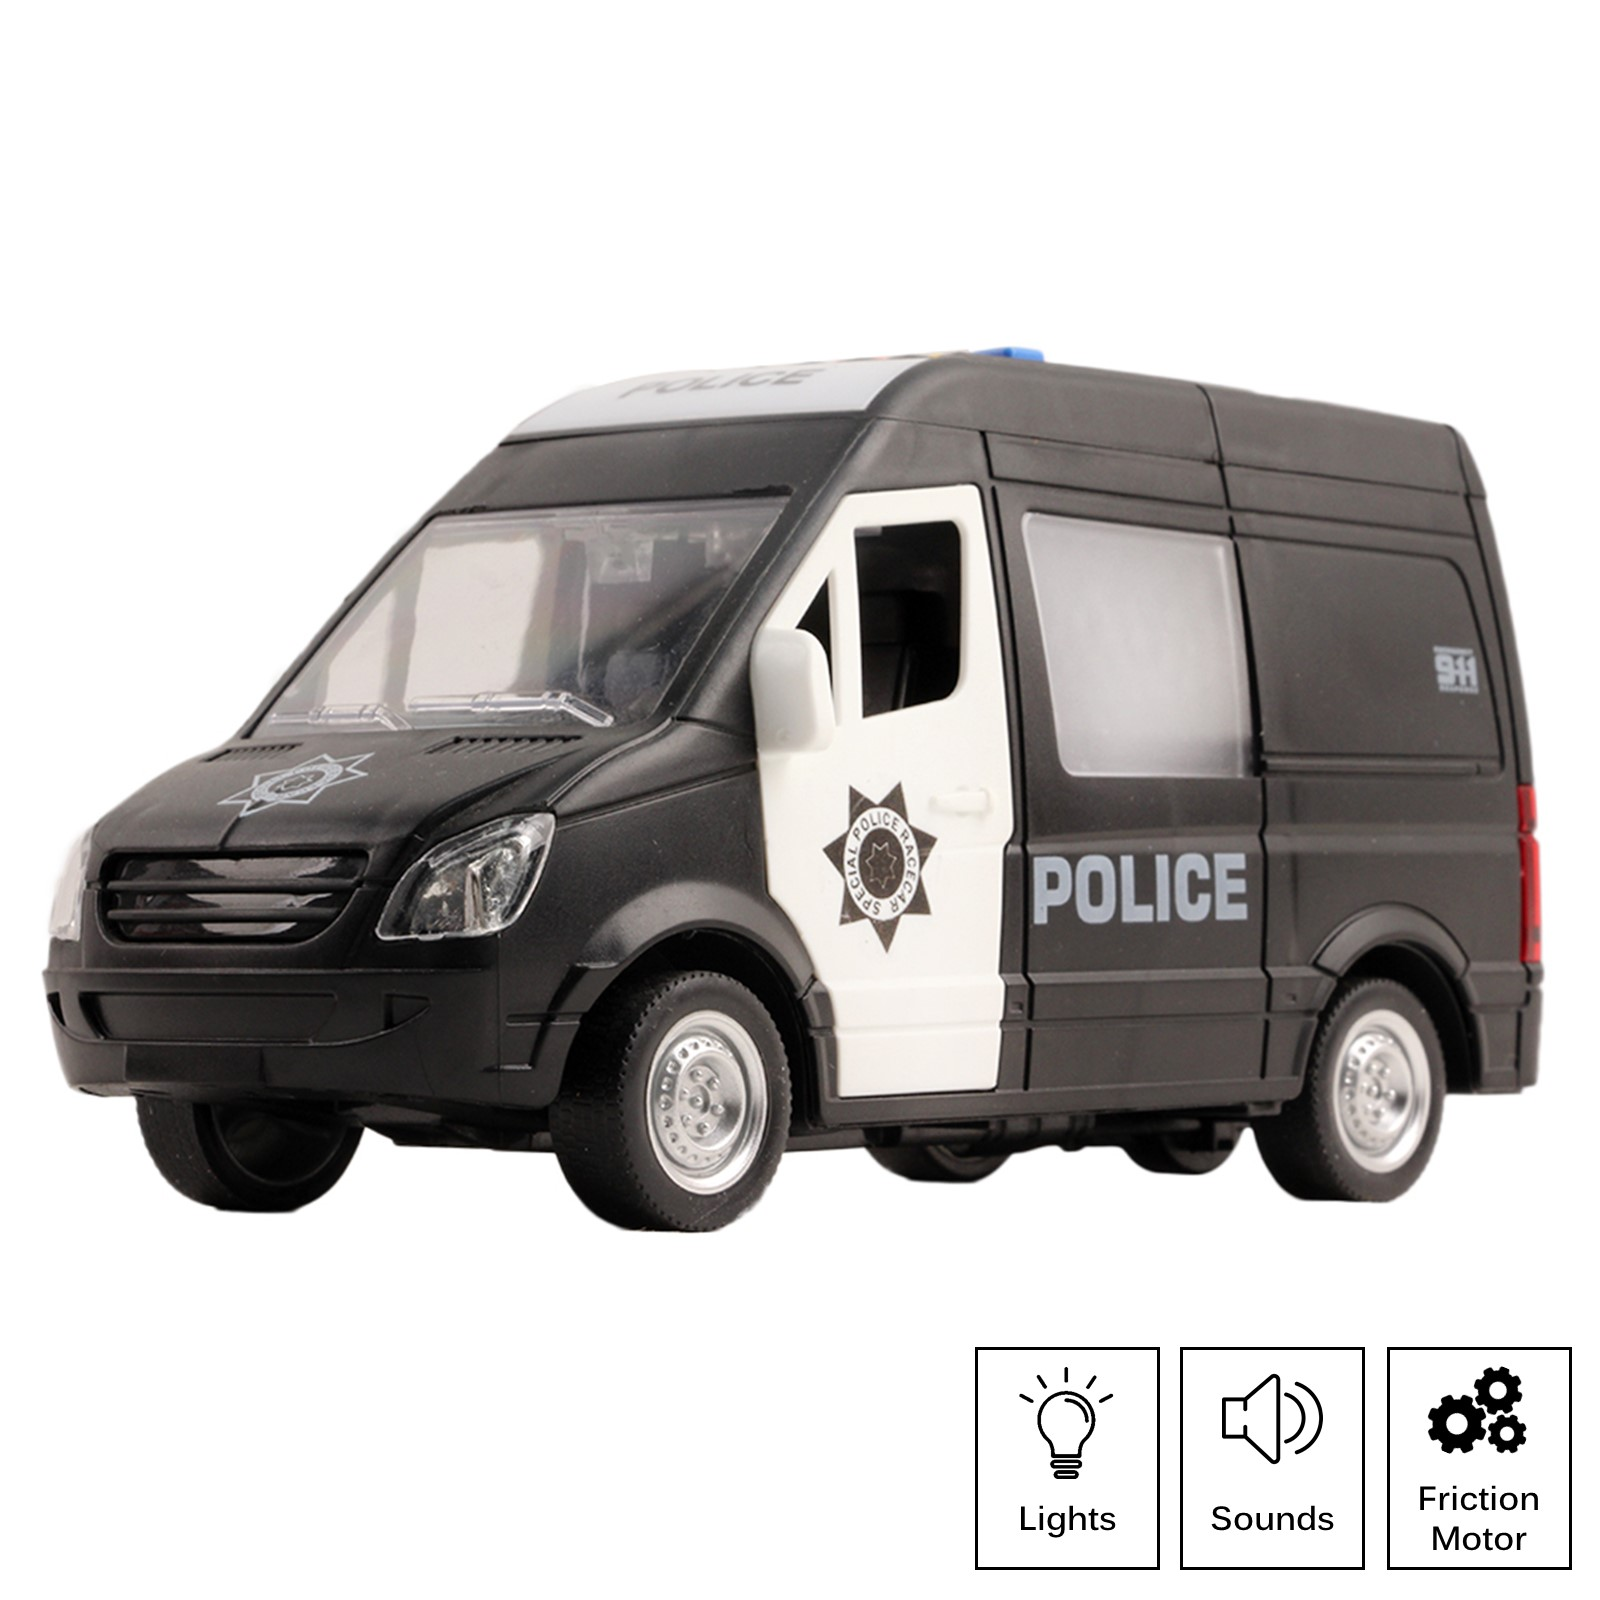 Rescue Police Car Friction Powered 1:16 Scale With Lights And Sound Effects Durable Kids SWAT Transport Vehicle Push And Go Pretend Play Emergency Toy Cop Van Great Gift For Children Boys Girls